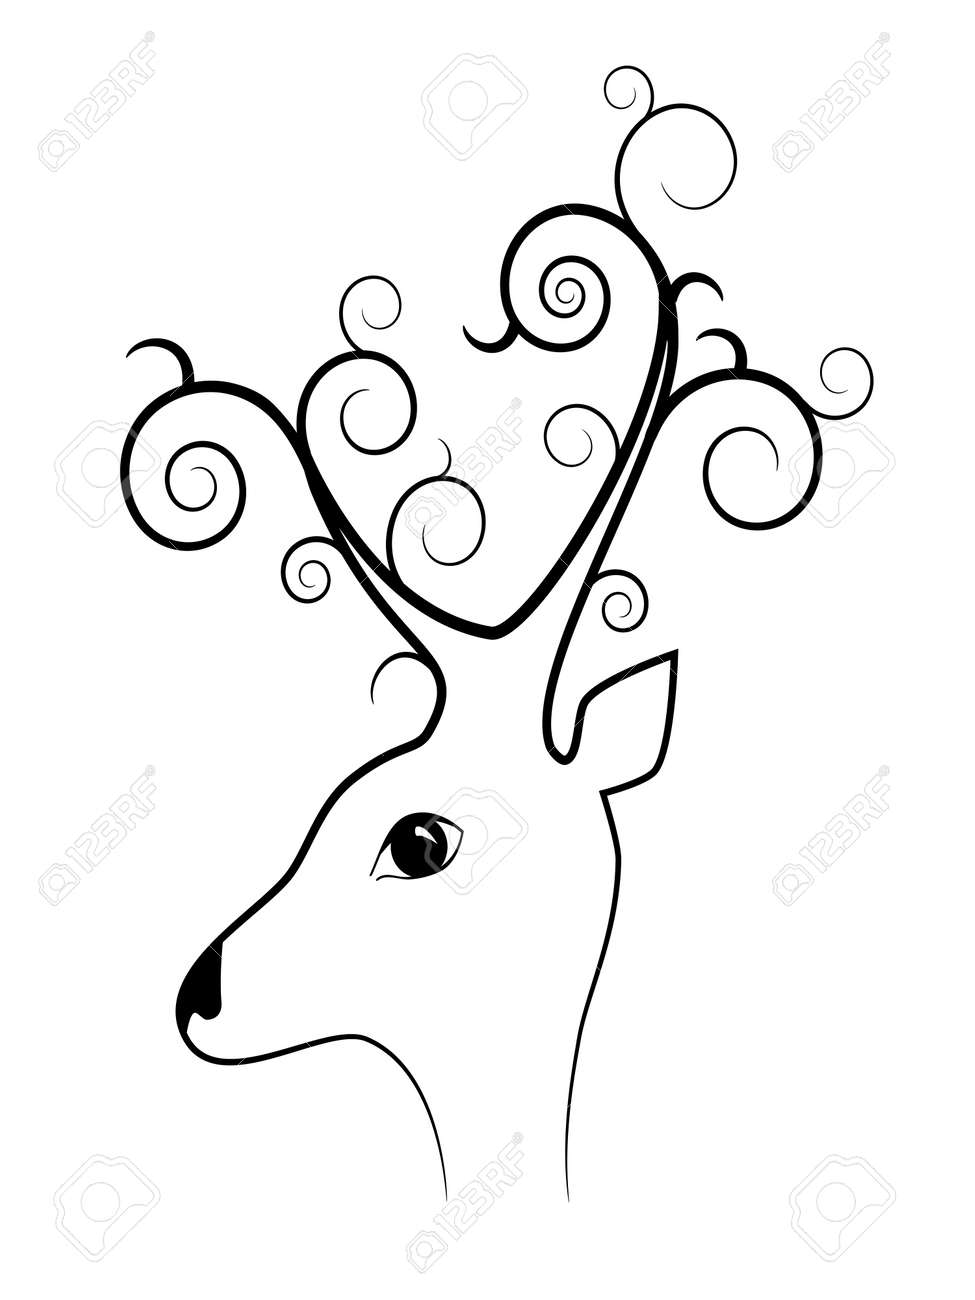 picture about black silhouette of deer Stock Vector - 8265645